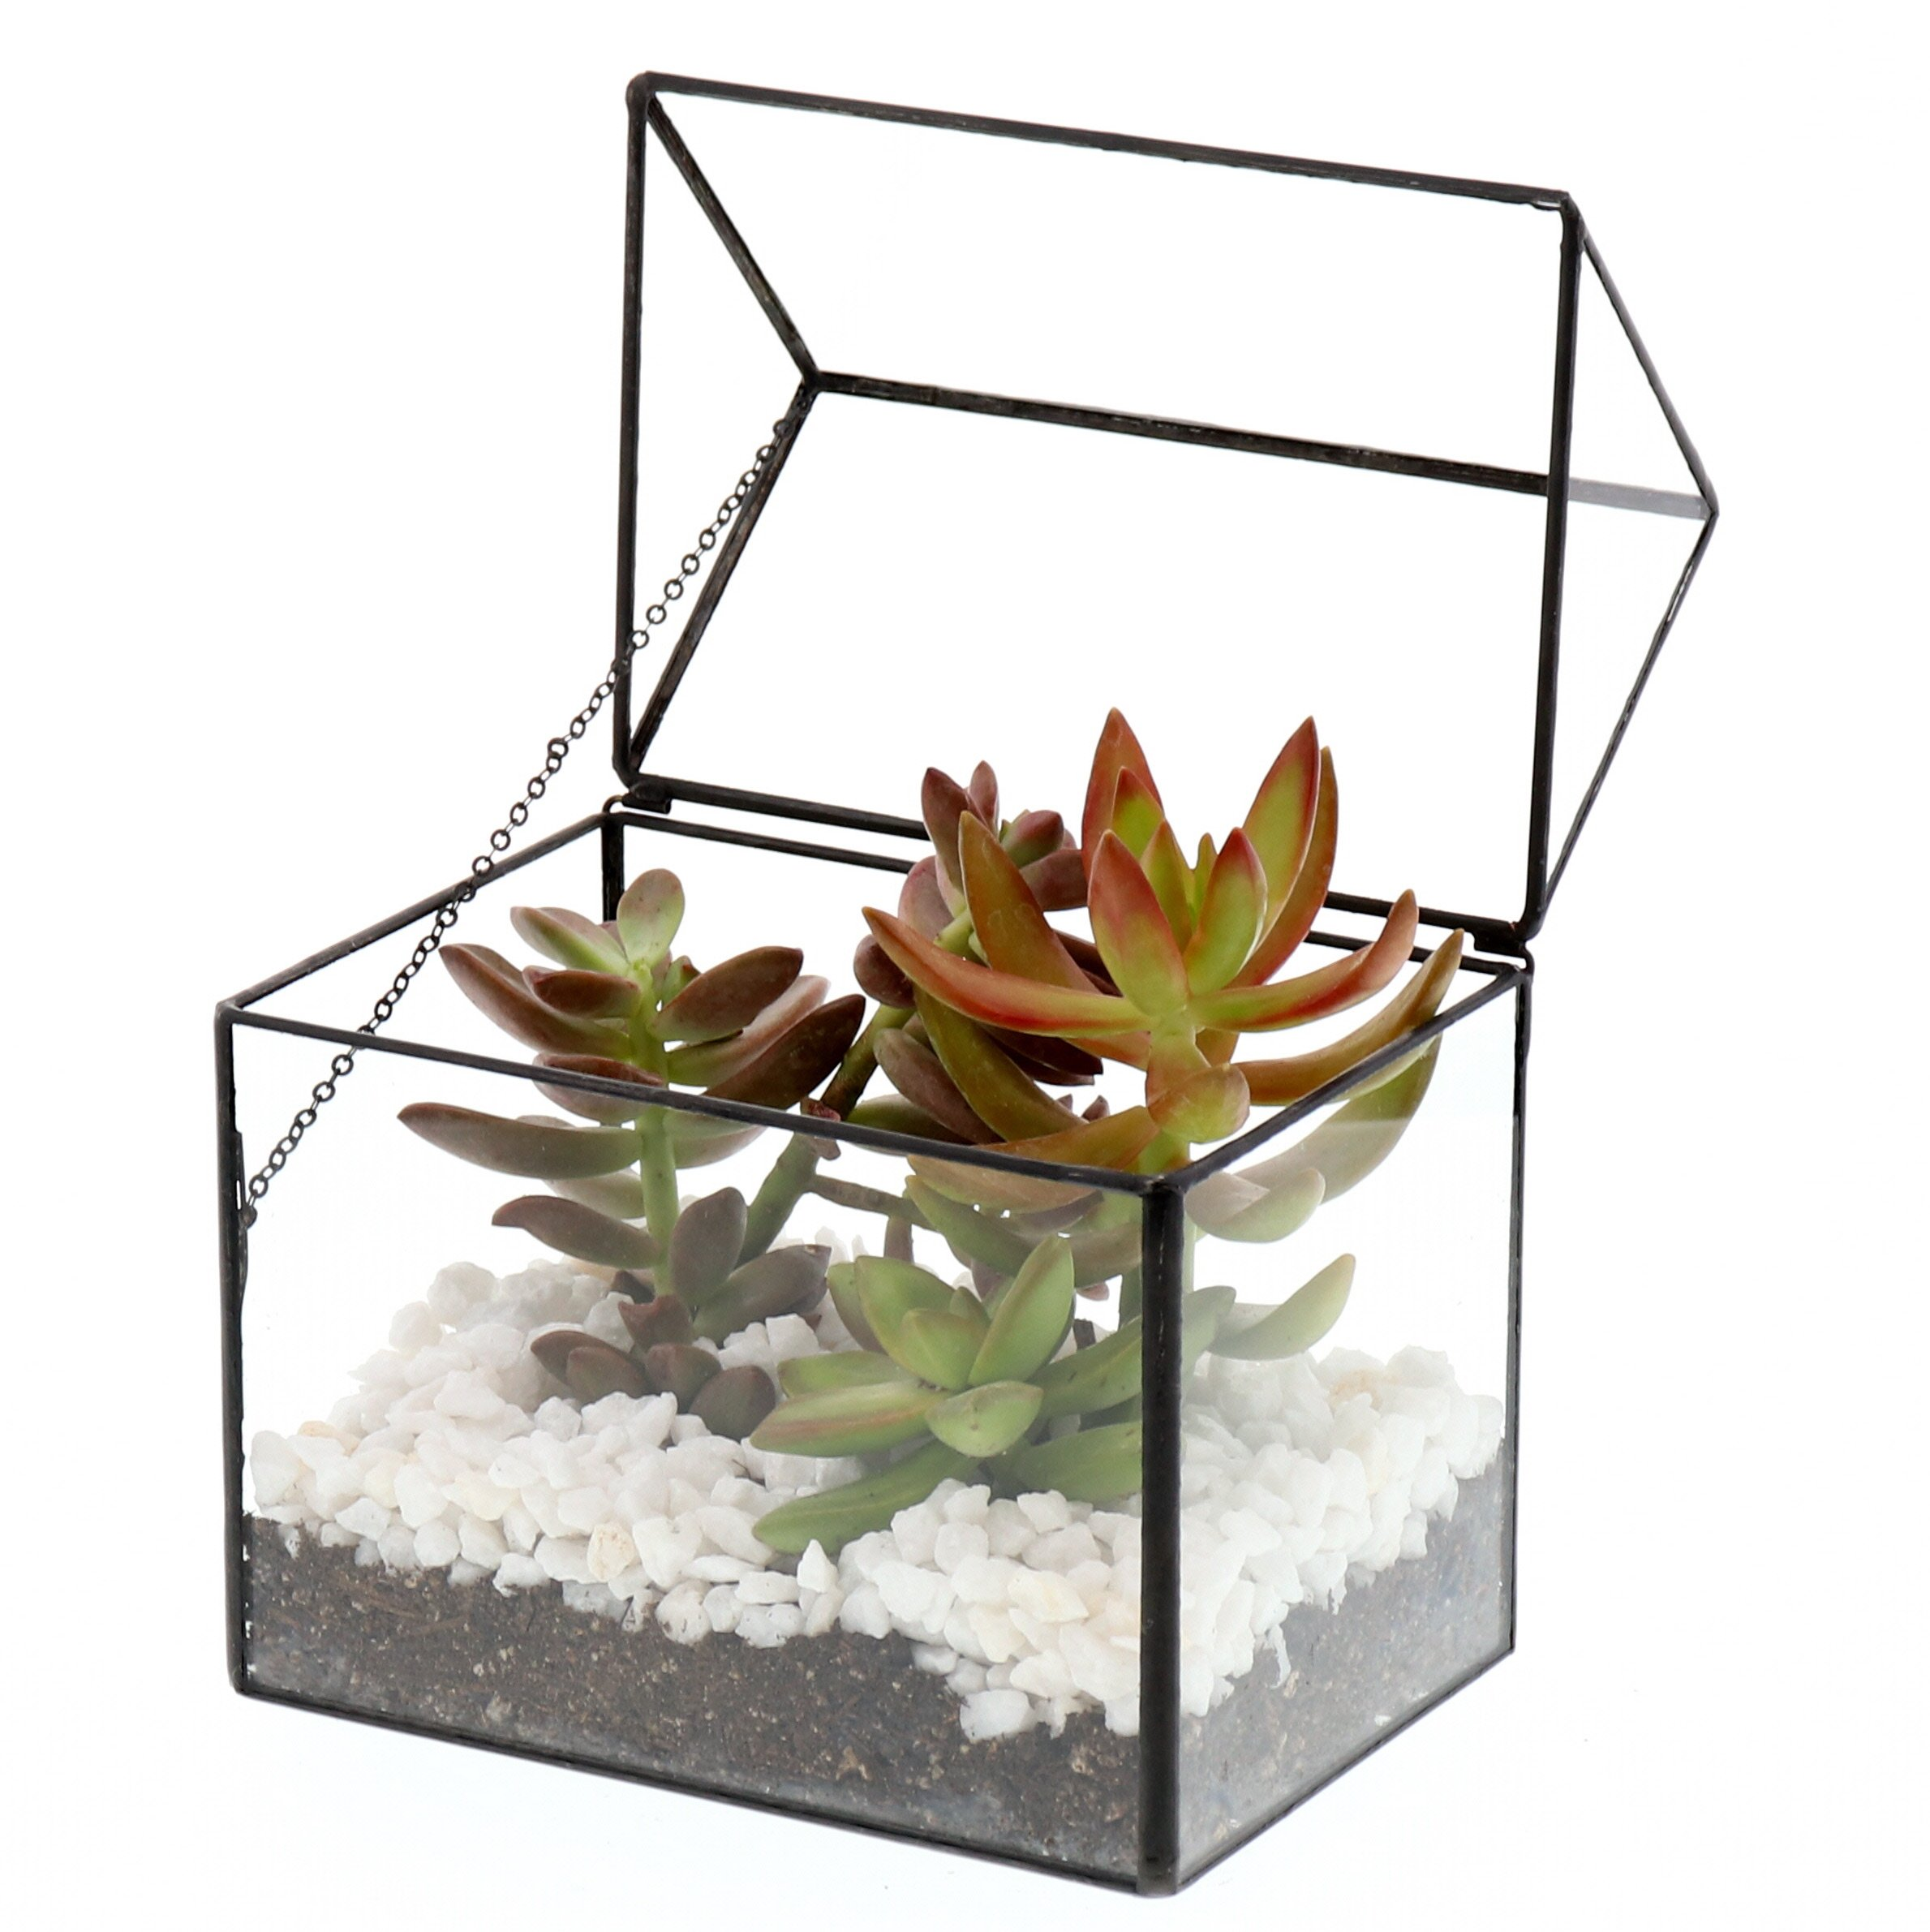 Barnyard Designs Watertight Glass Terrarium House Succulent Plant Container Tabletop Decor 6'' x 6.5'' x 4'' (Black) by Barnyard Designs